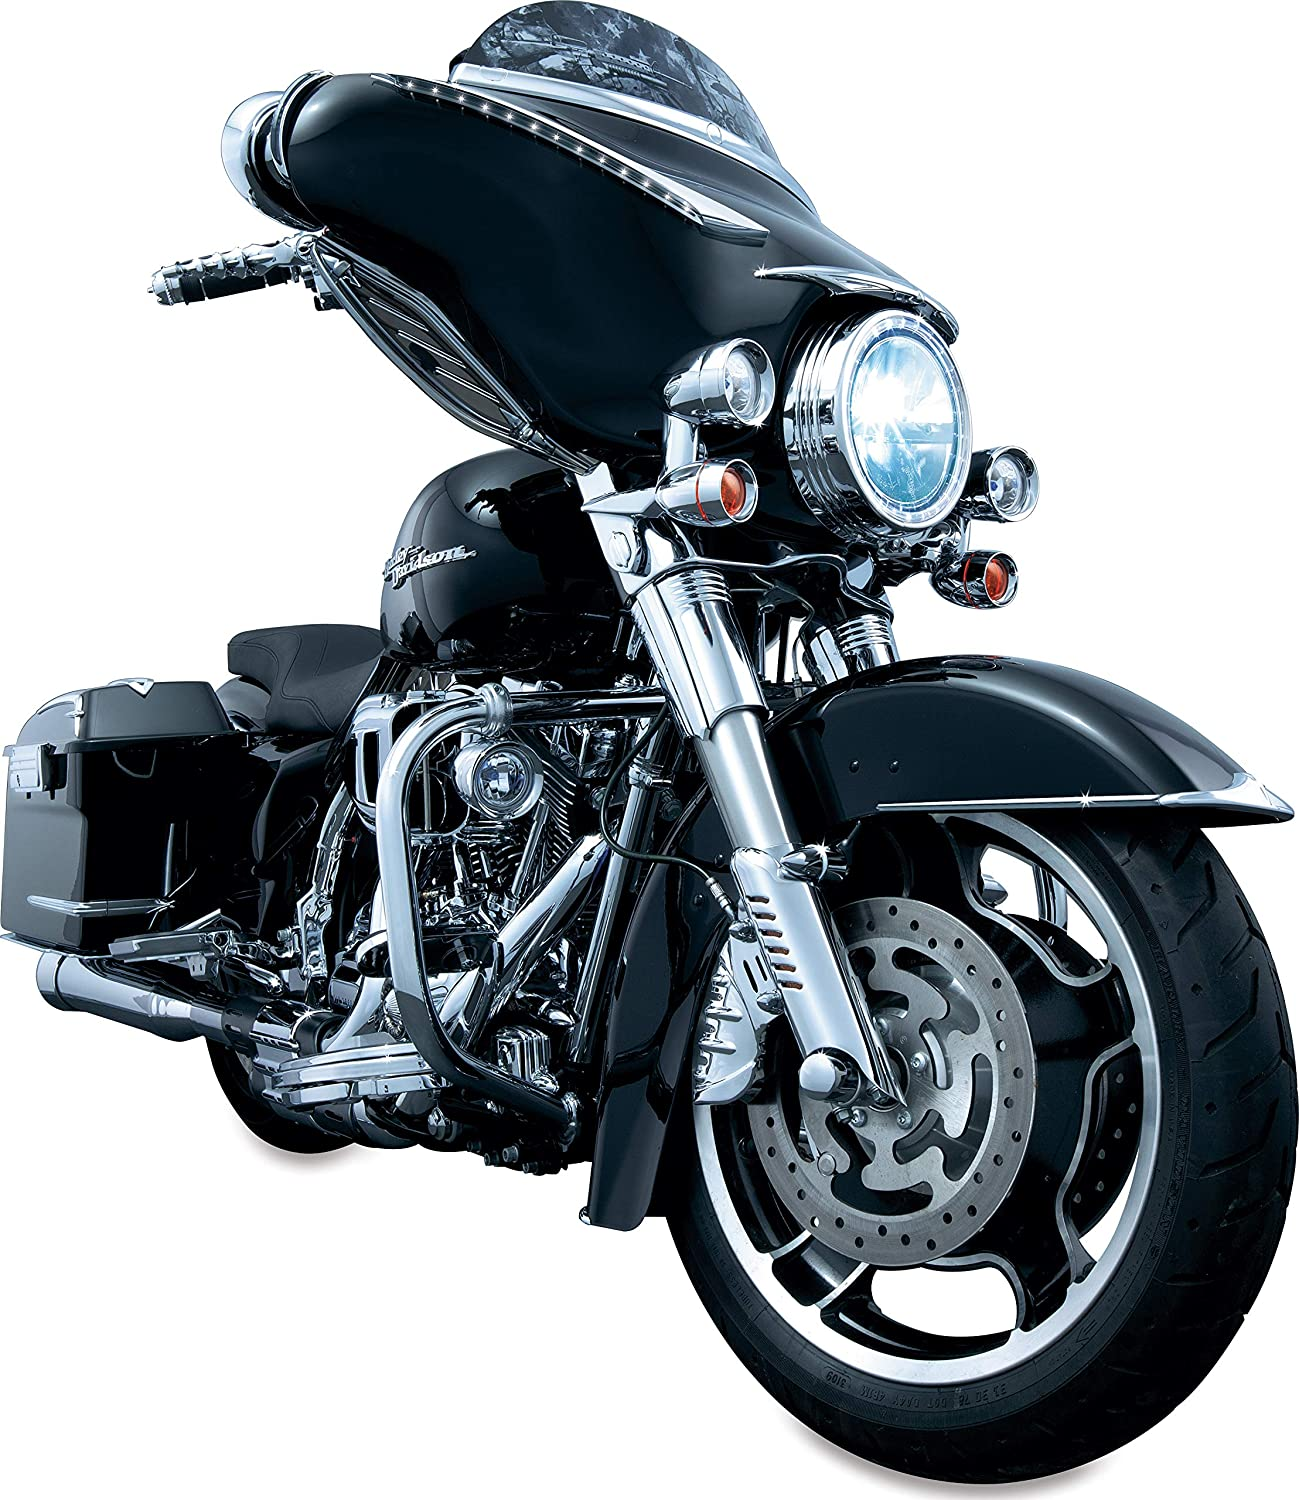 Gloss Black Kuryakyn 7209 Motorcycle Accent Accessory Lower Fork Leg Deflector Shields with Fender Boss Covers for 2000-13 Harley-Davidson Motorcycles 1 Pair